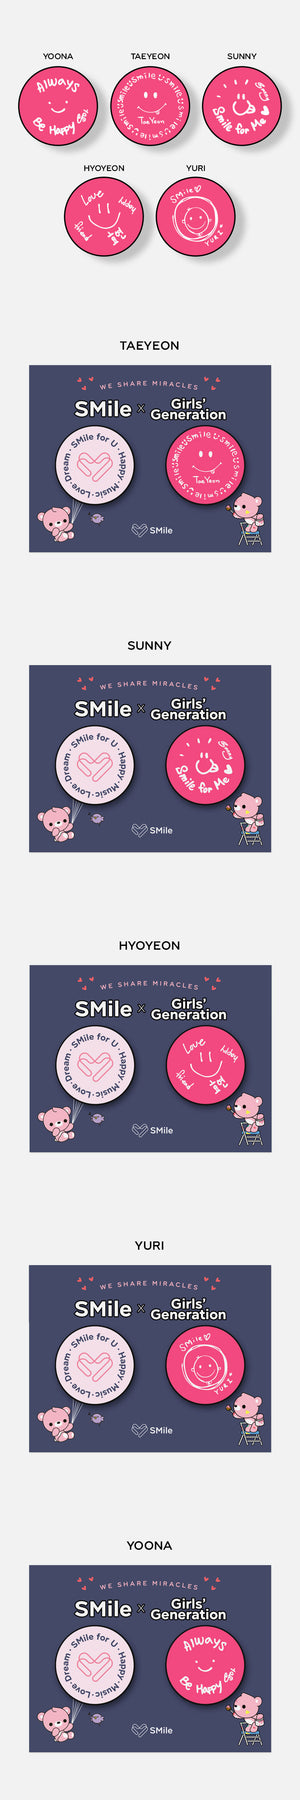 GIRLS GENERATION SMile for U Goods - GRIP TOK